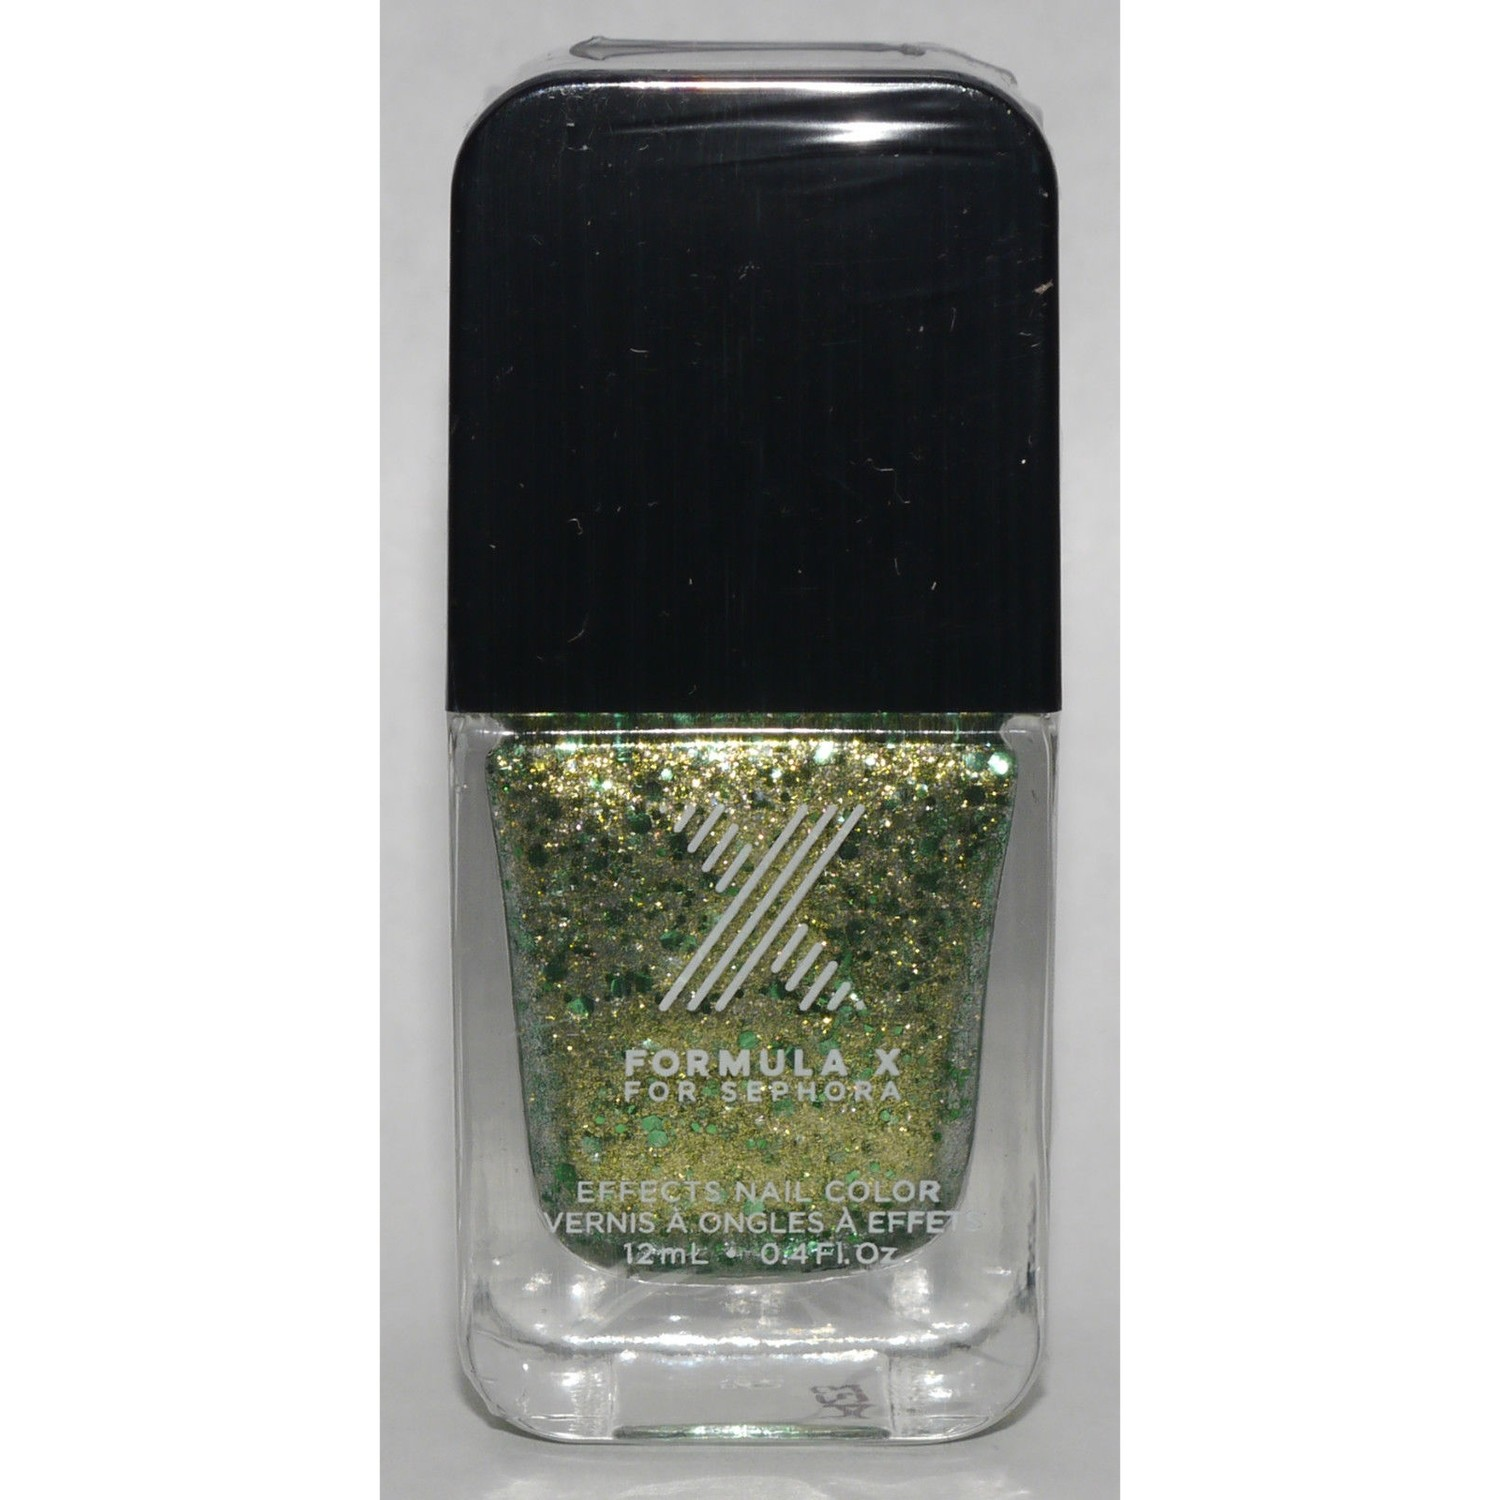 Drawn To You Nail Color-FORMULA X For Sephora Effects Nail Color Polish Lacquer .4 oz